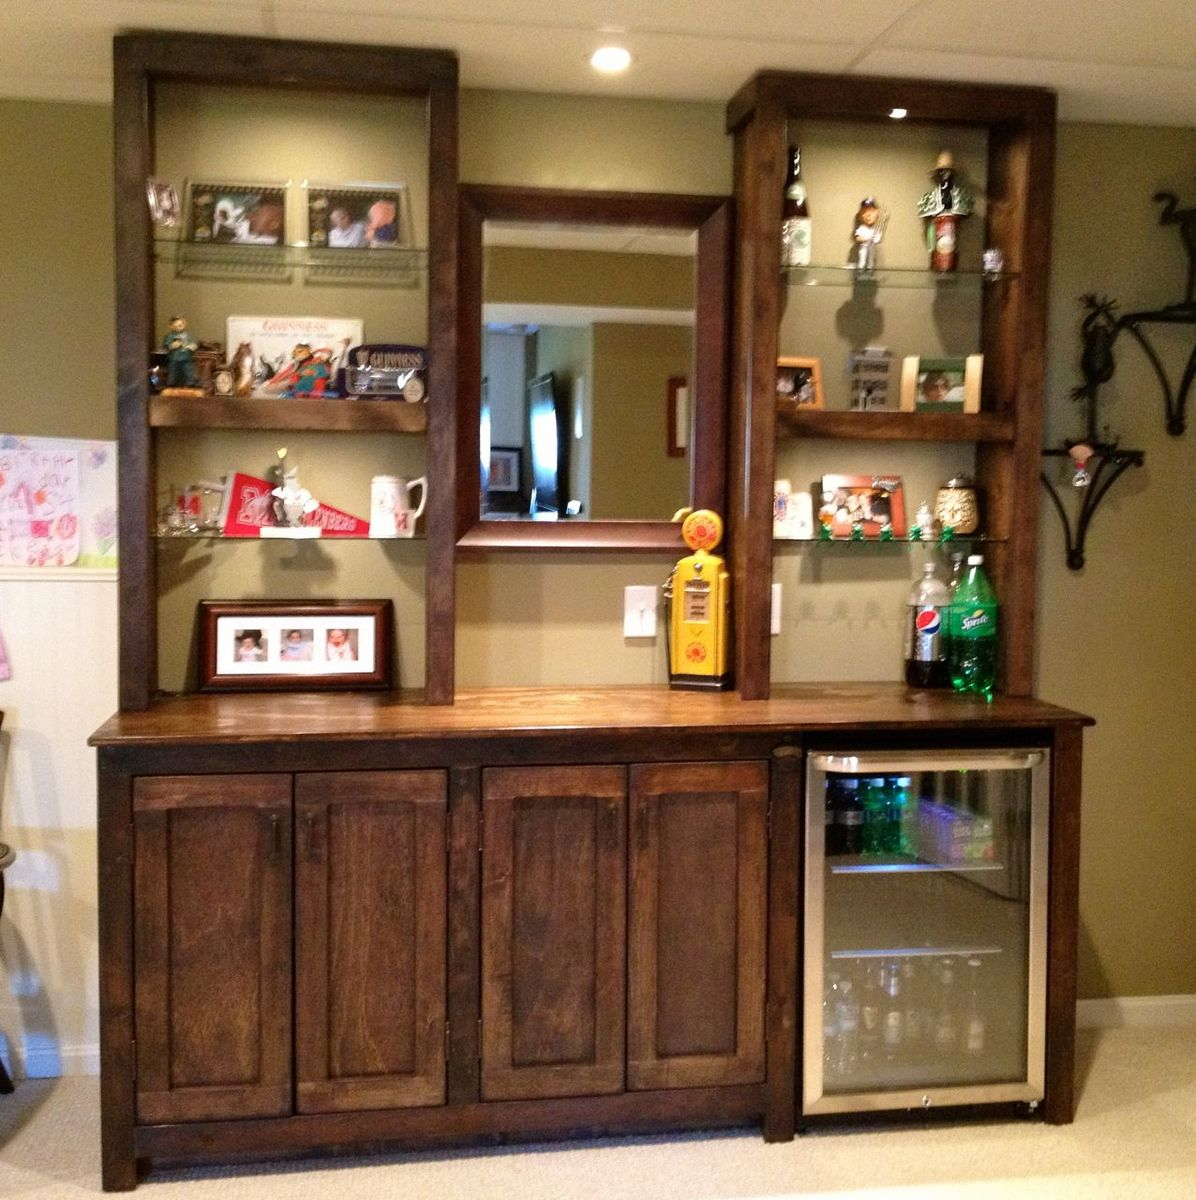 Bar Cabinets And Shelves Ana White intended for dimensions 1196 X 1200